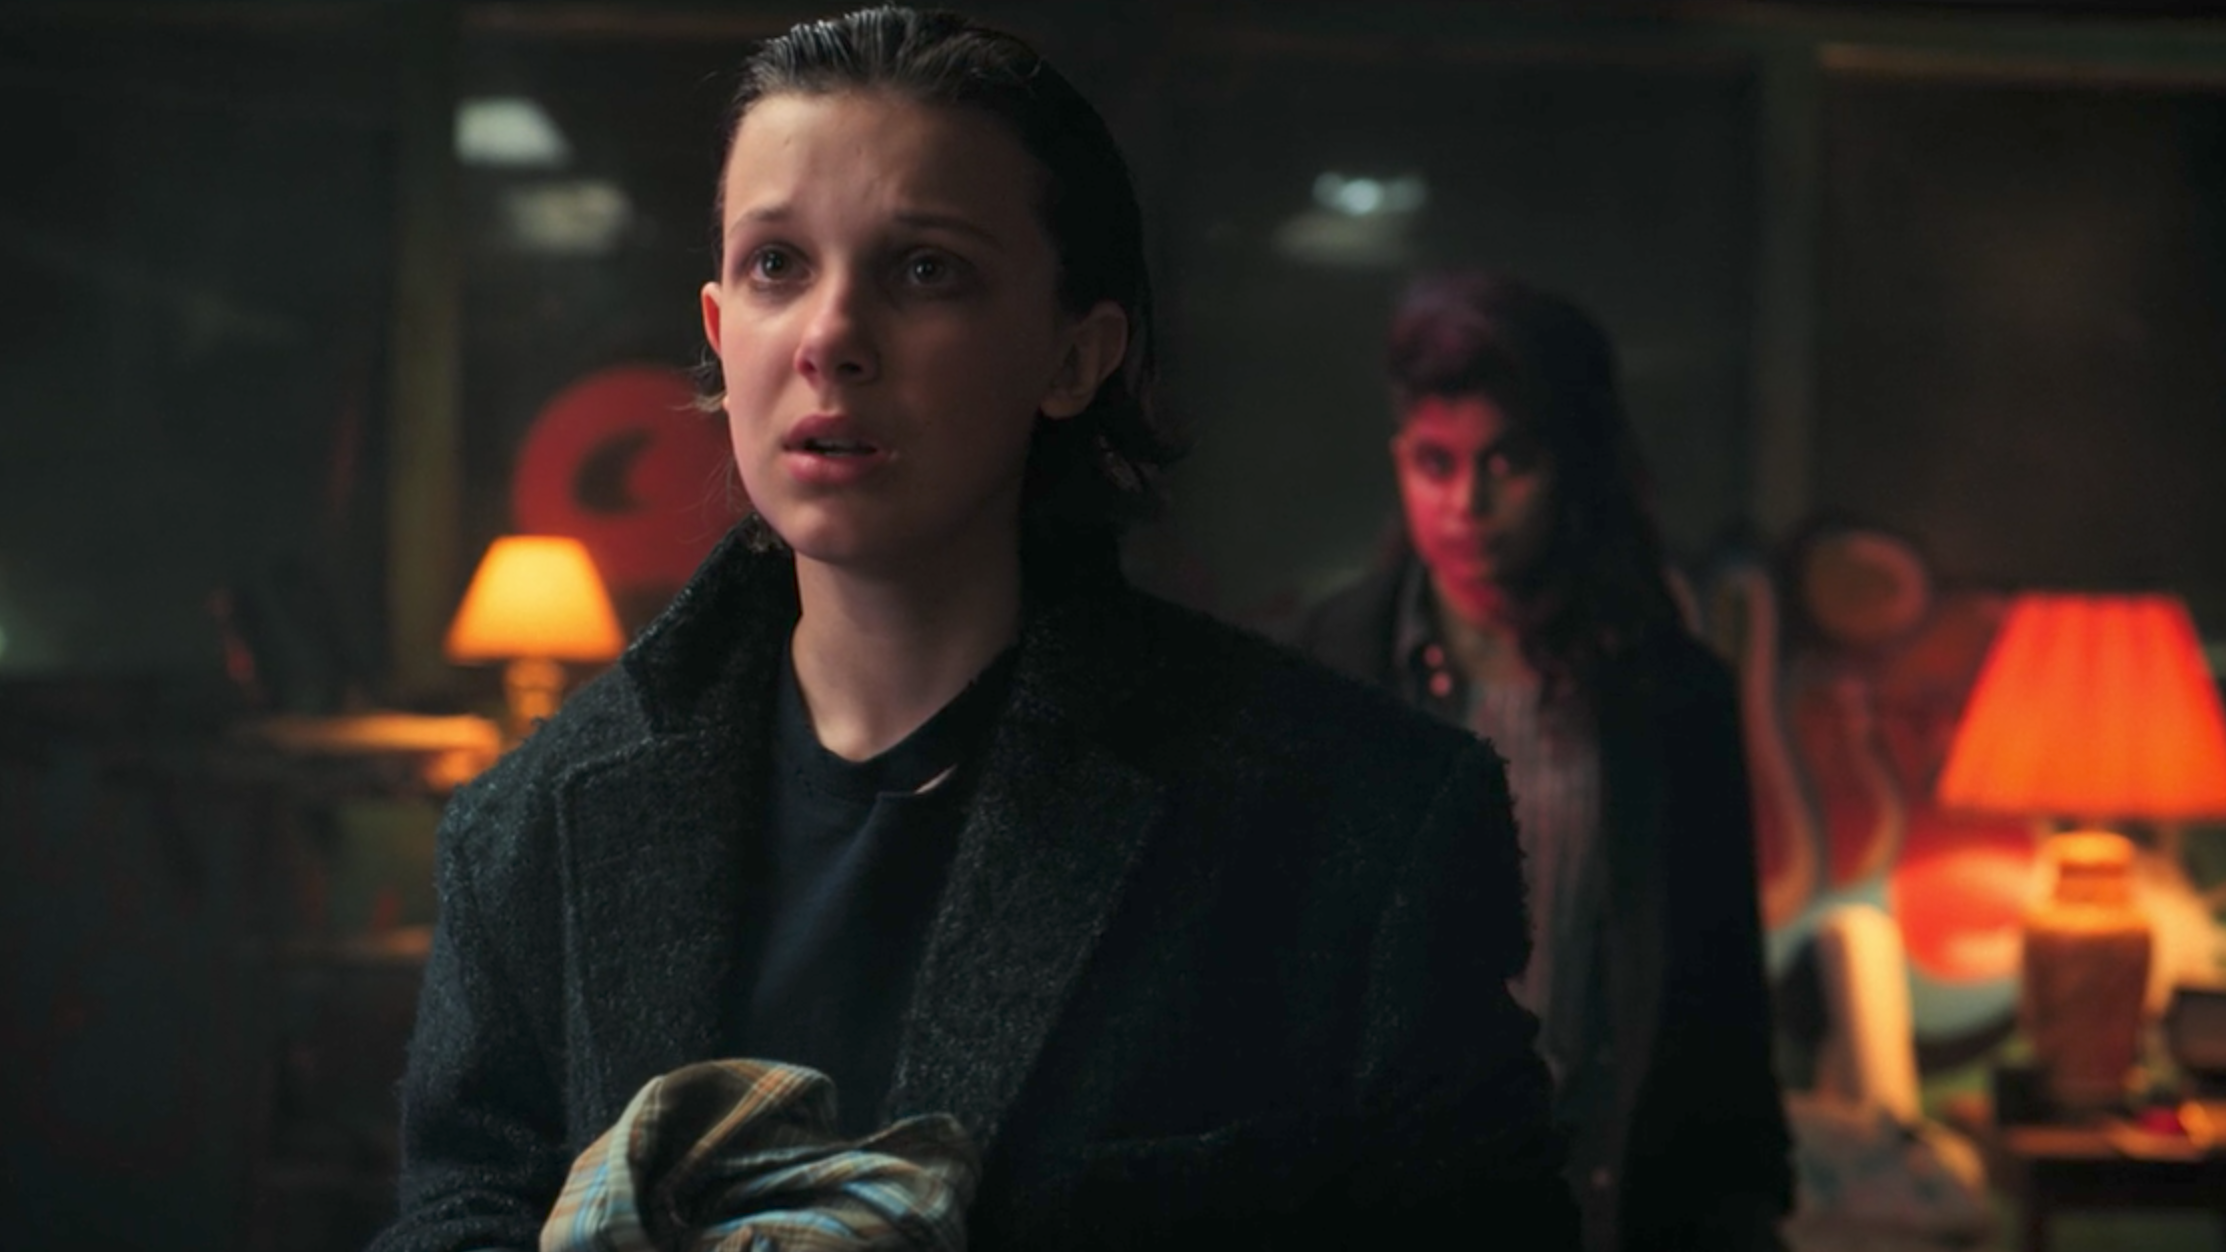 5 Things Stranger Things Would Be Missing Without 'The Lost Sister'